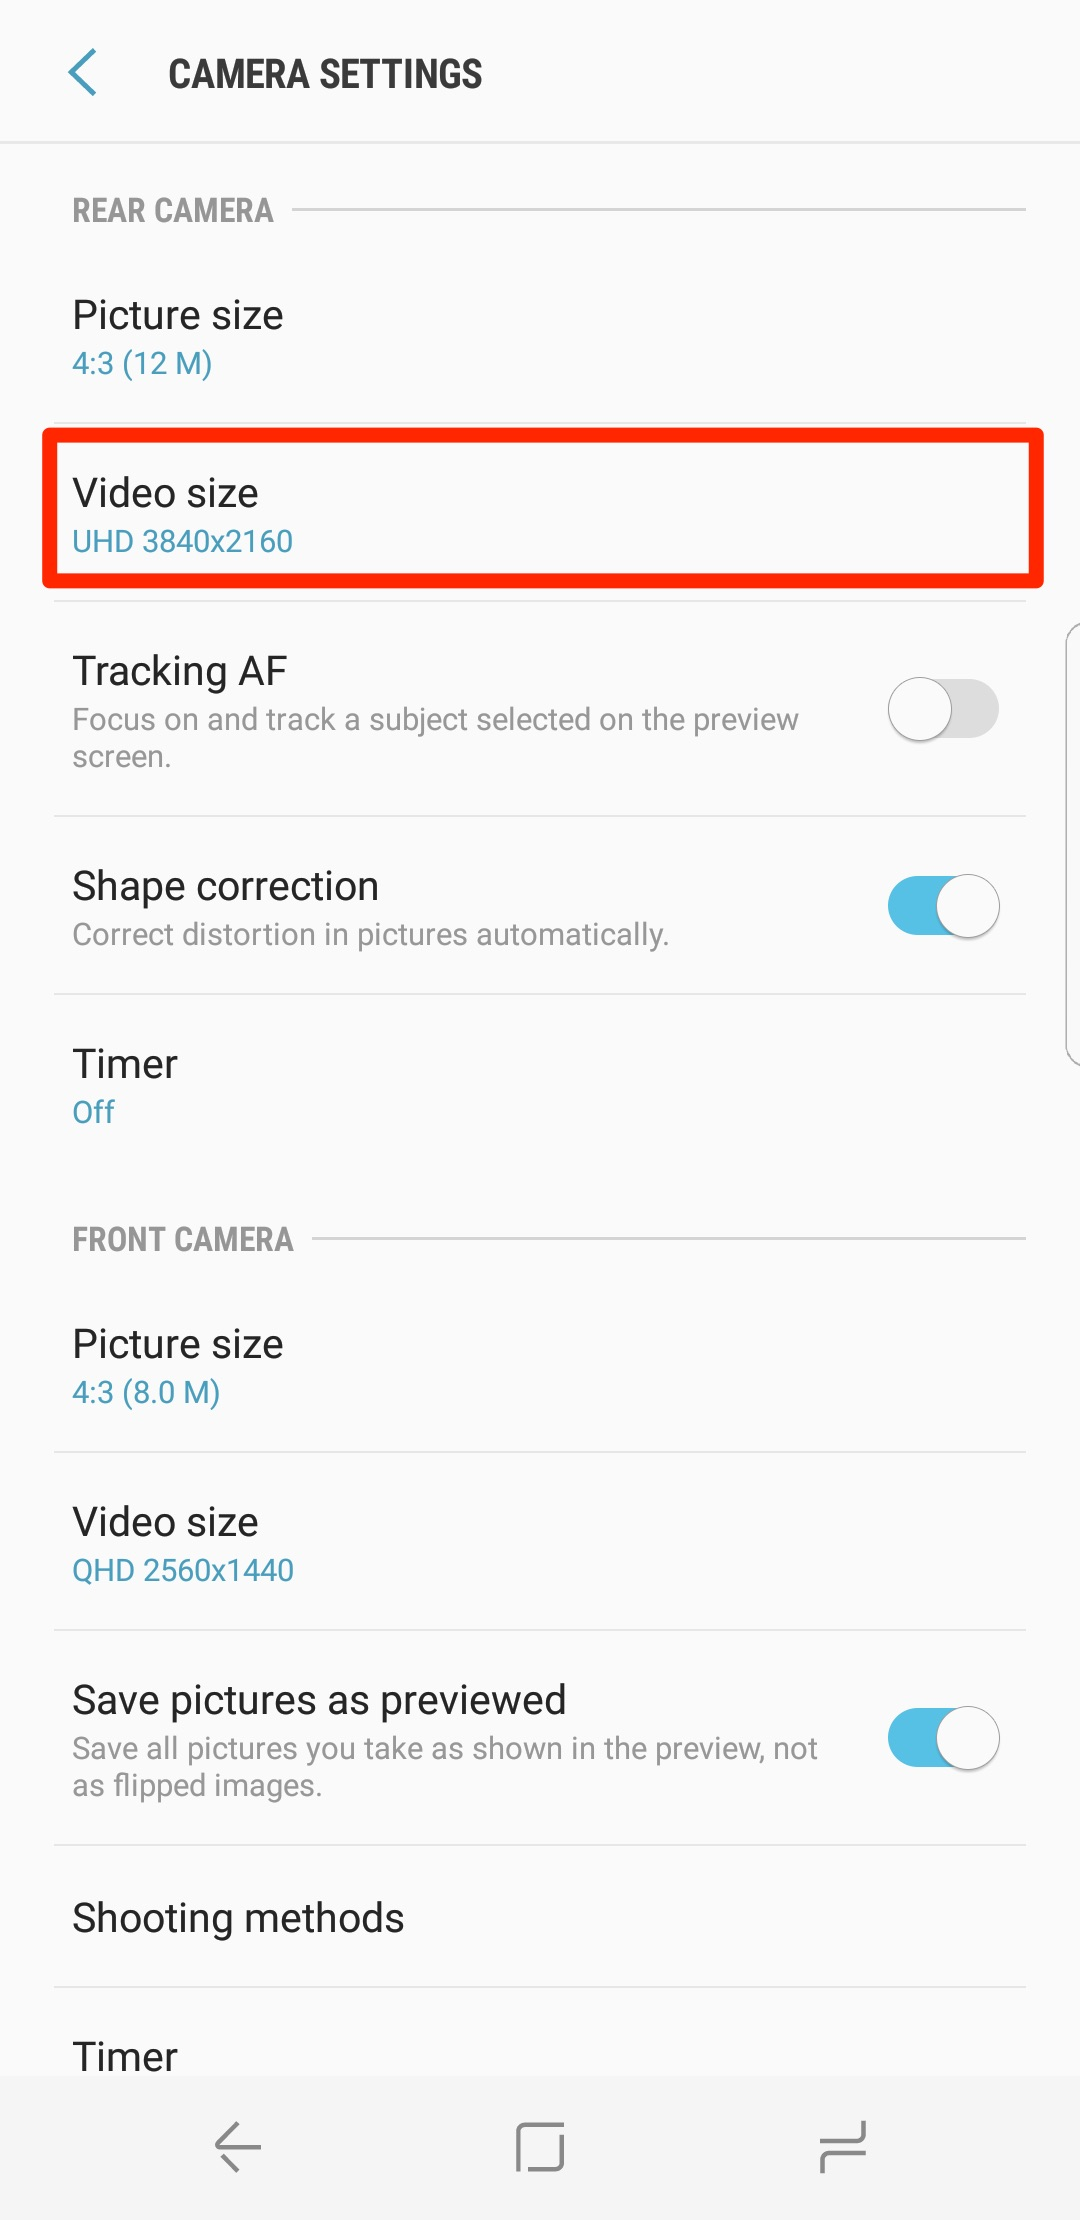 Galaxy S8 Tip: Here's how to enable image stabilization ...